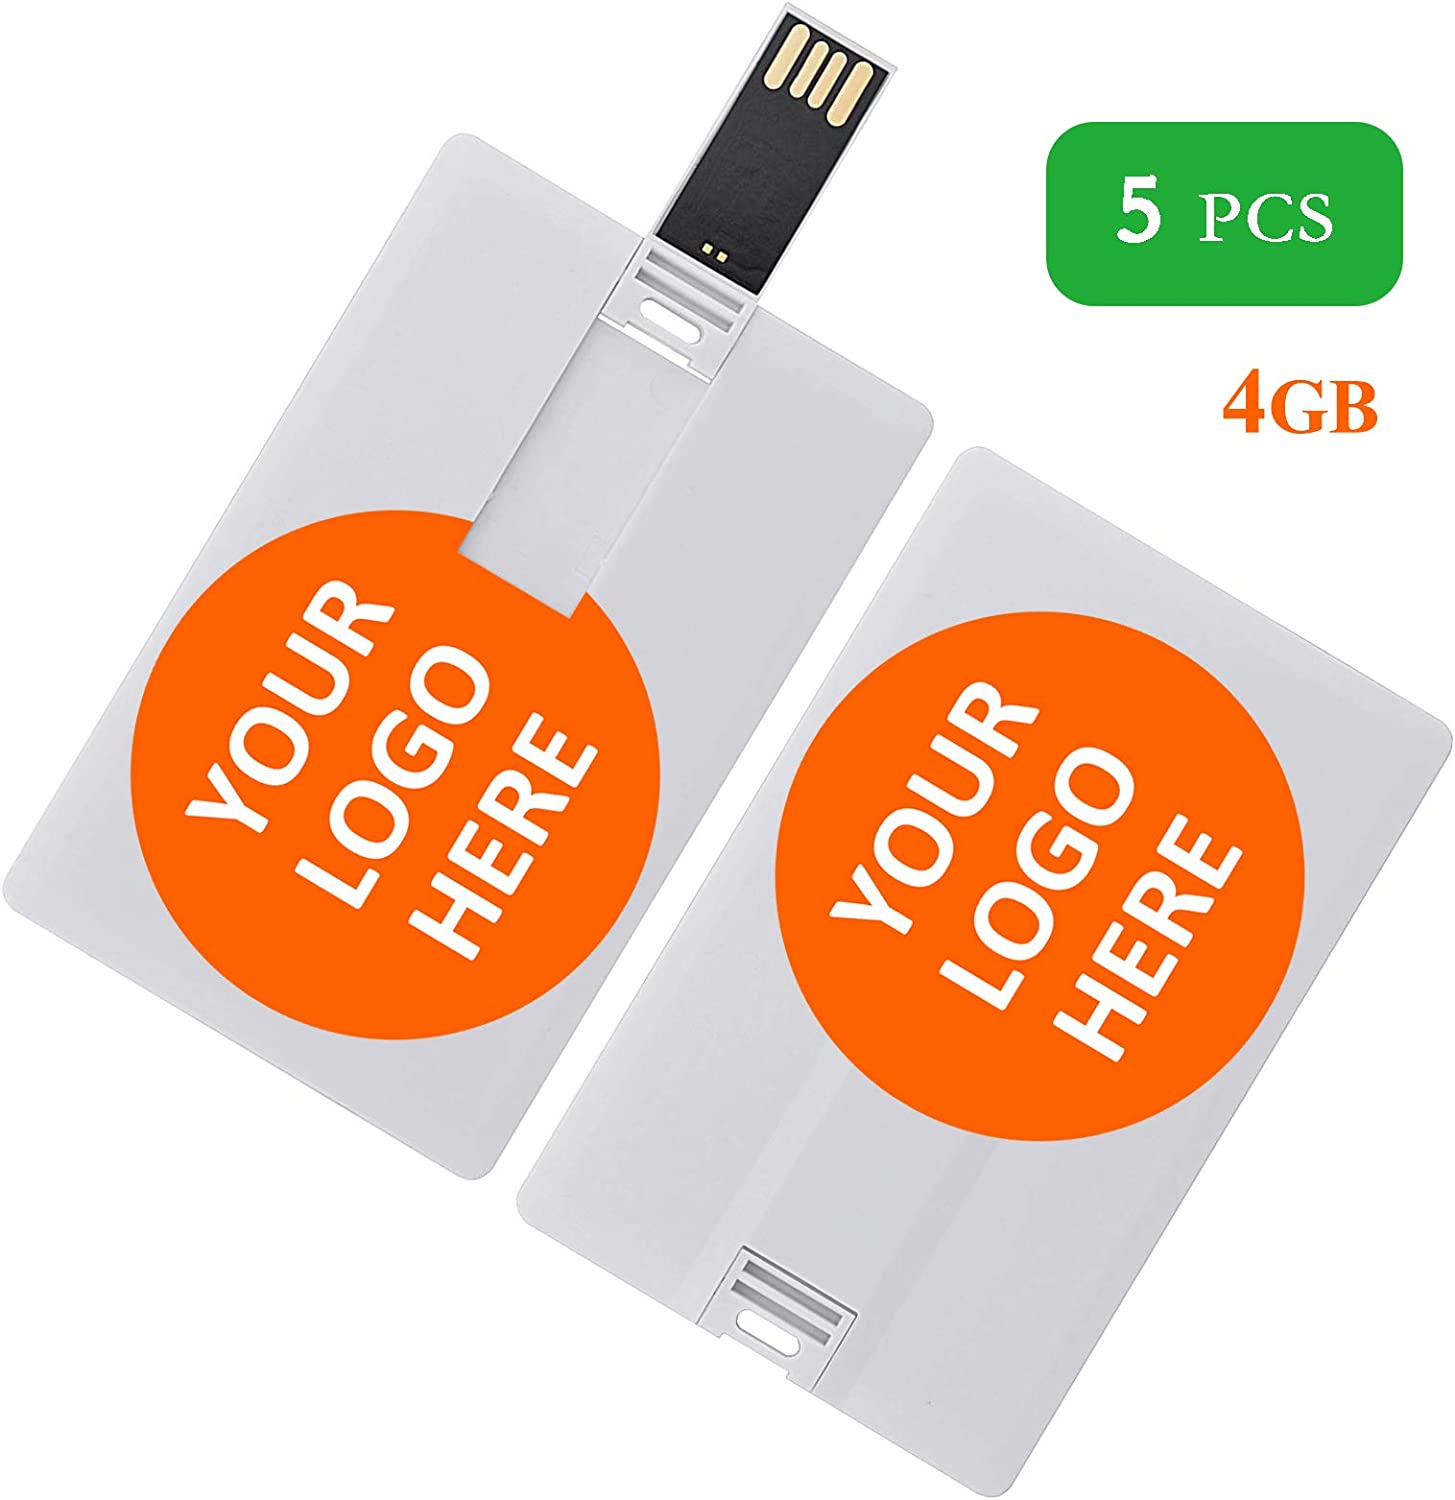 8G /& 10 PCS Custom Personal Company Logo//Photo//Text Gifts 8GB Credit Card Style USB Flash Drive Personalized Pendrive Memory Stick